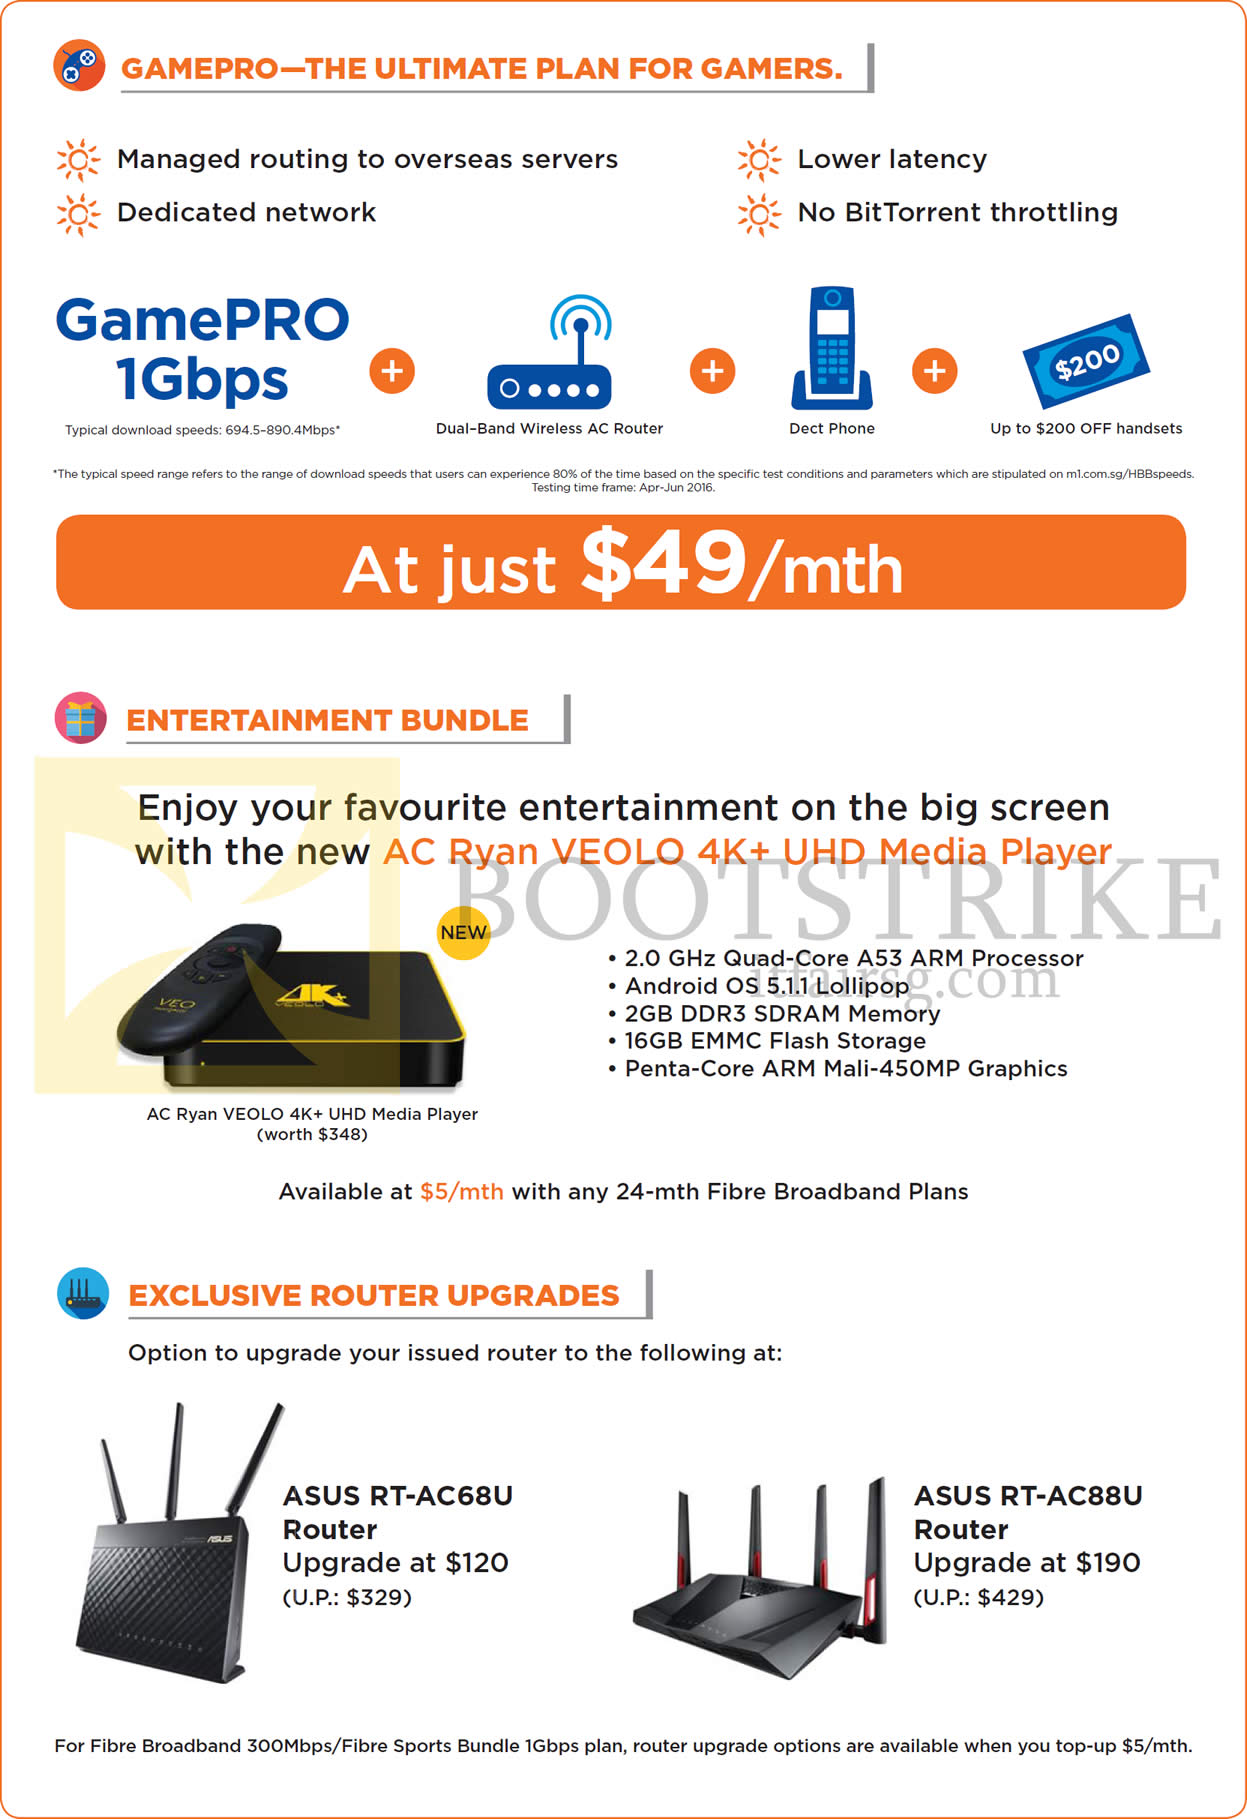 COMEX 2016 price list image brochure of M1 49.00 GamePRO 1Gbps, Entertainment Bundle, Routers, Asus RT-AC68U, RT-AC88U